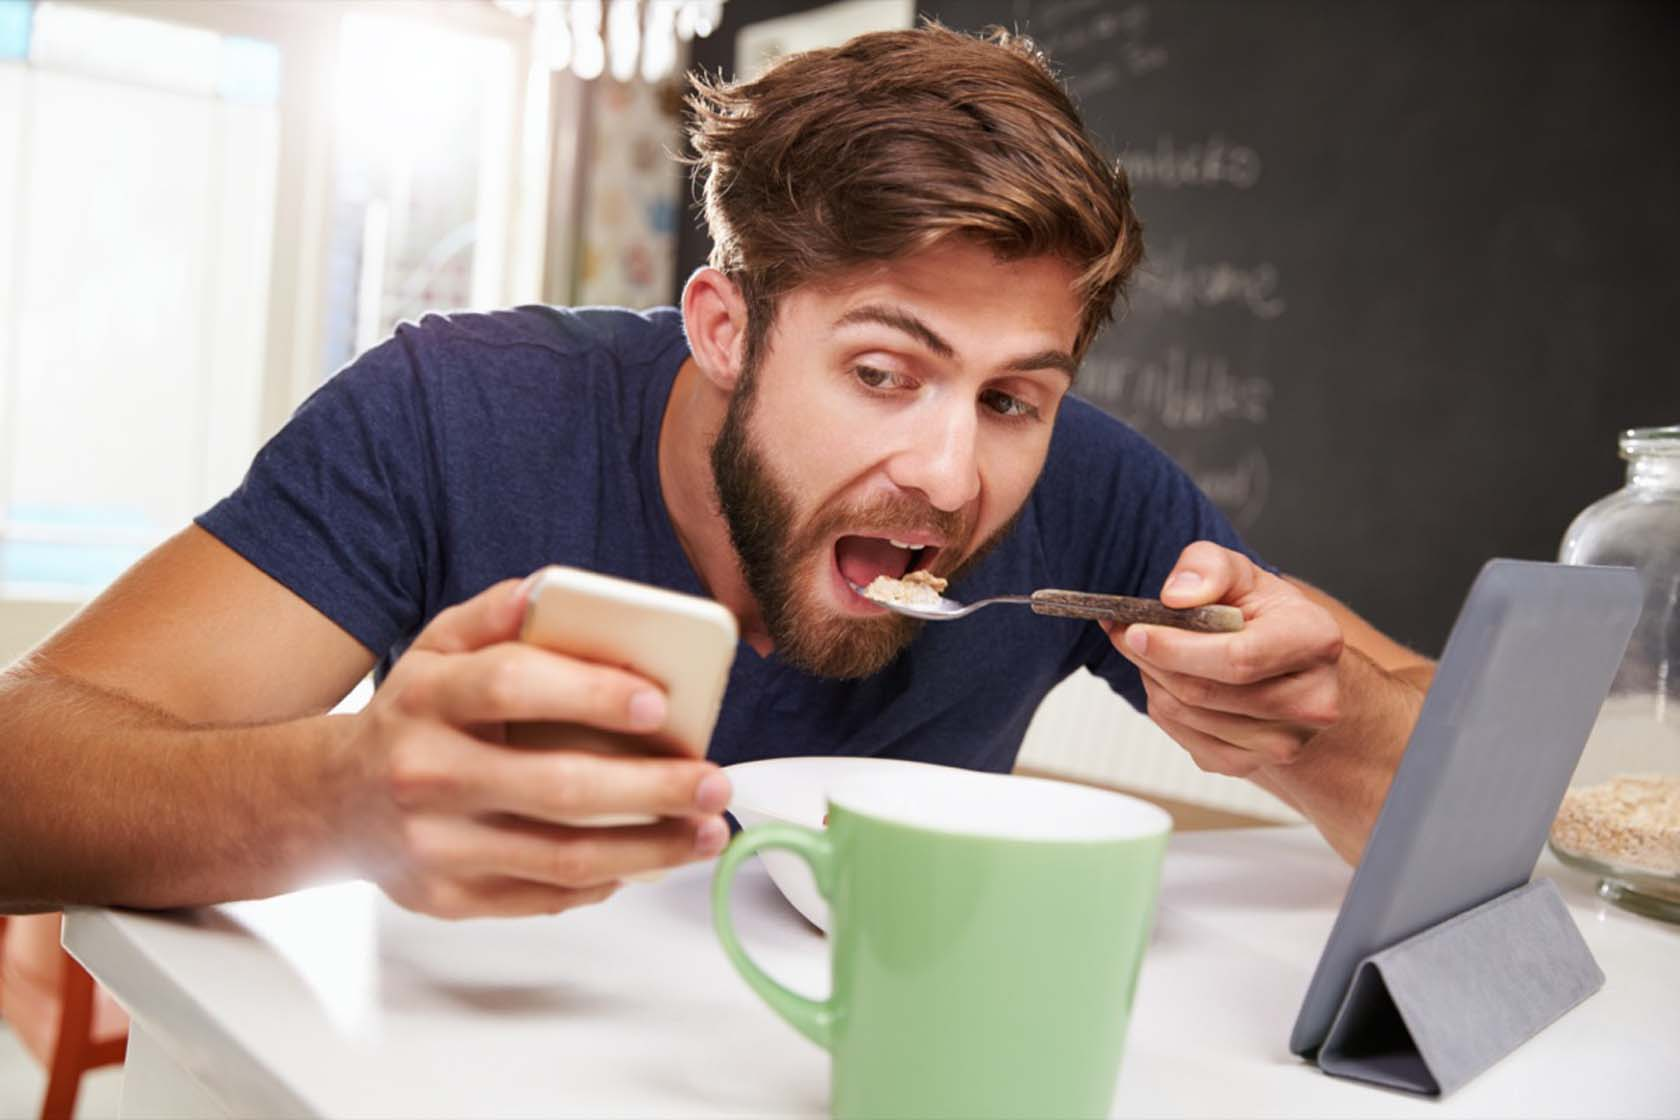 Minimize Distractions While Eating